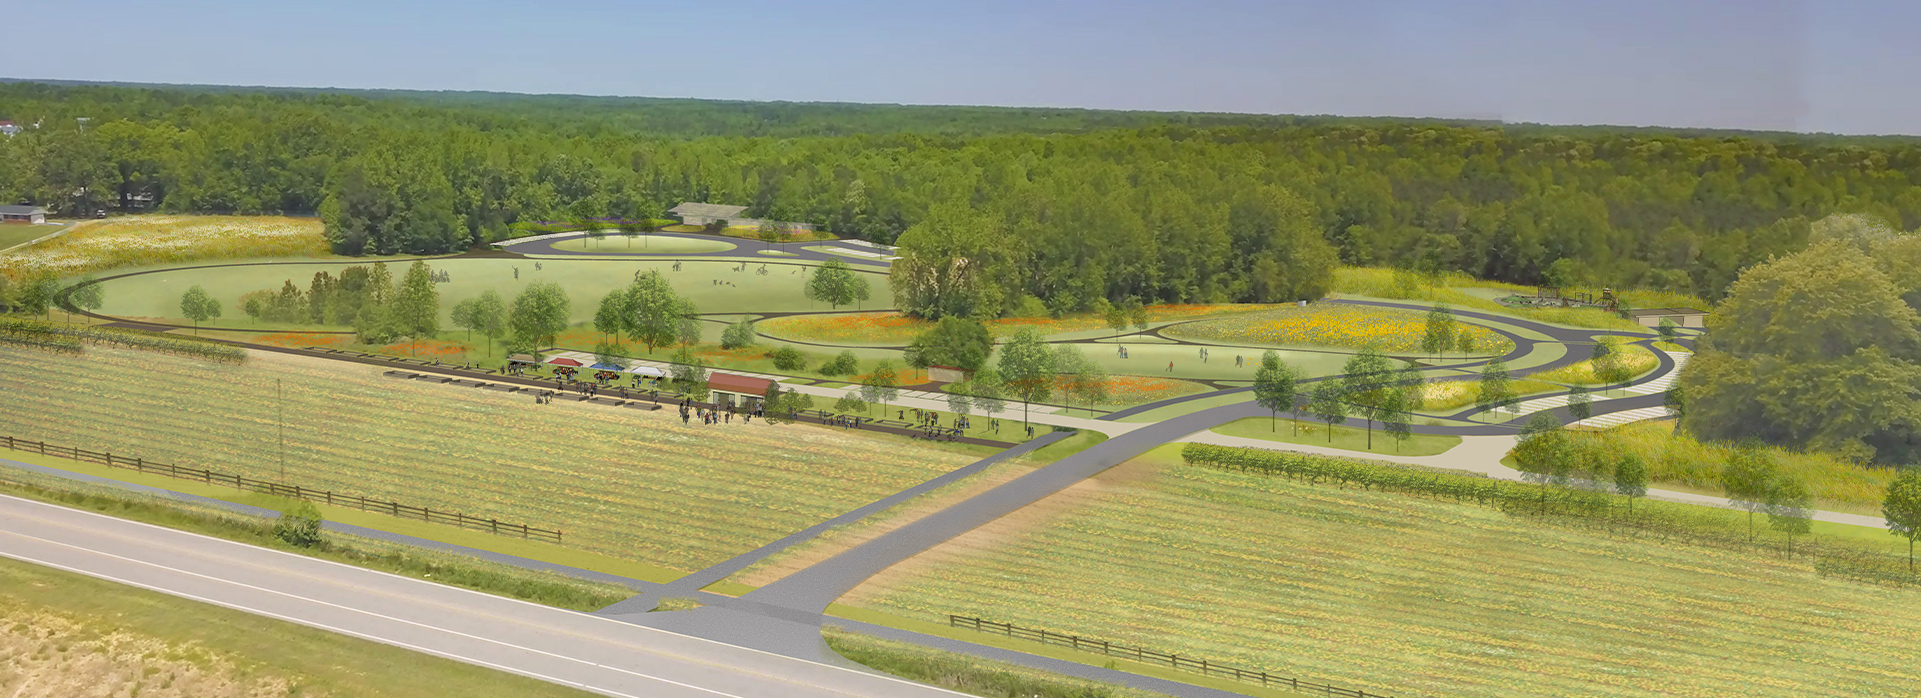 35 North Provides Cost Estimating Services to the Wake County Parks Recreation and Open Space for the Beech Bluff County Park project in Wake County, NC